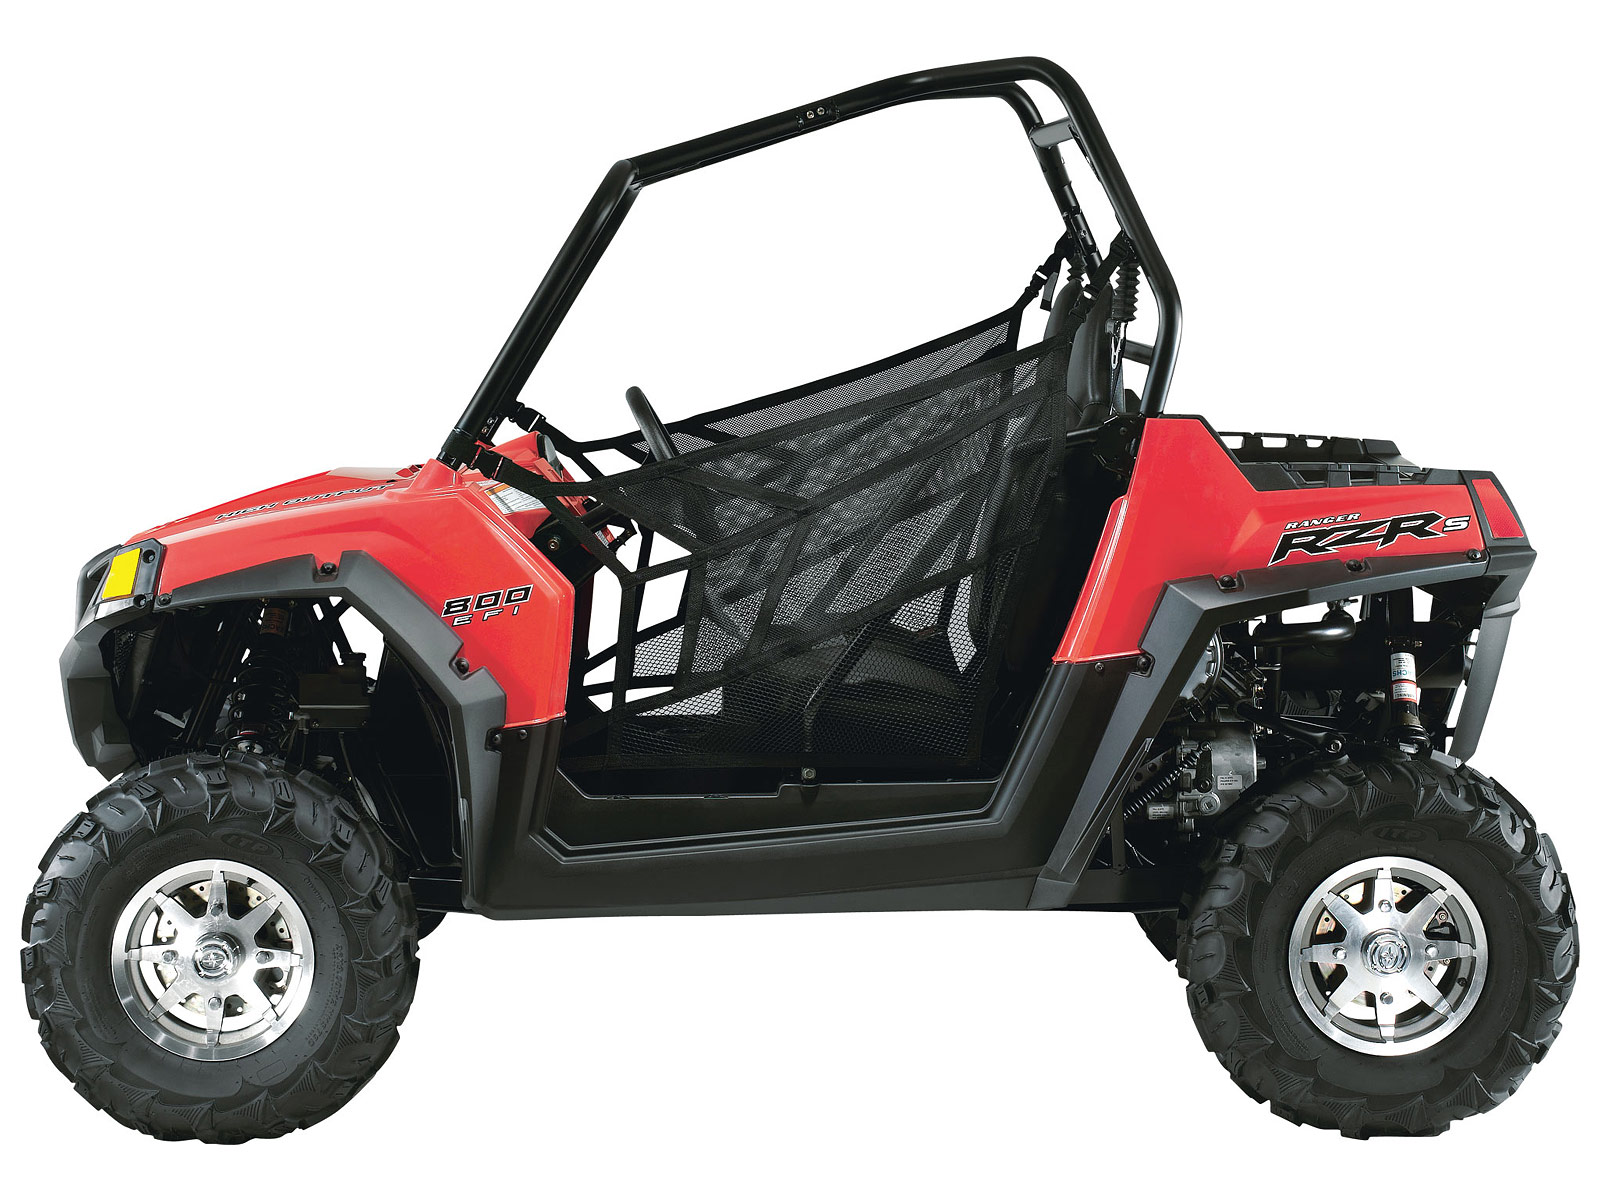 2012 Rzr S Wiring Diagram Will Be A Thing Polaris Ranger Yamaha Fz8 Fuse Box Kia Elsalvadorla For 2008 Diagrams